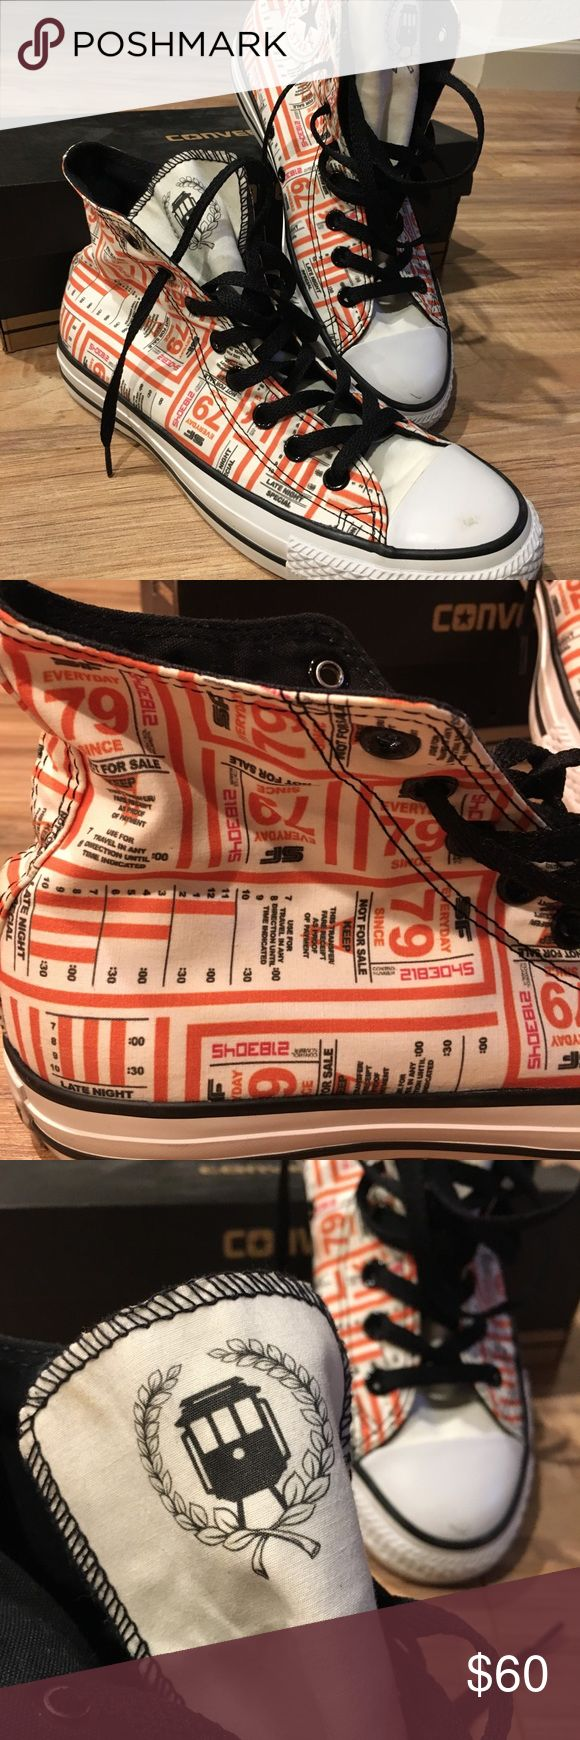 *RARE* Unisex Collectors Converse SF Muni City Circa 2012. Collaboration with ShoeBiz and Alan Gonzales. Nod to SF Muni (public transit). Bus pass design. Worn twice. Slight marks on toe (pictured). Size 7 men, size 9 women. Converse Shoes Sneakers